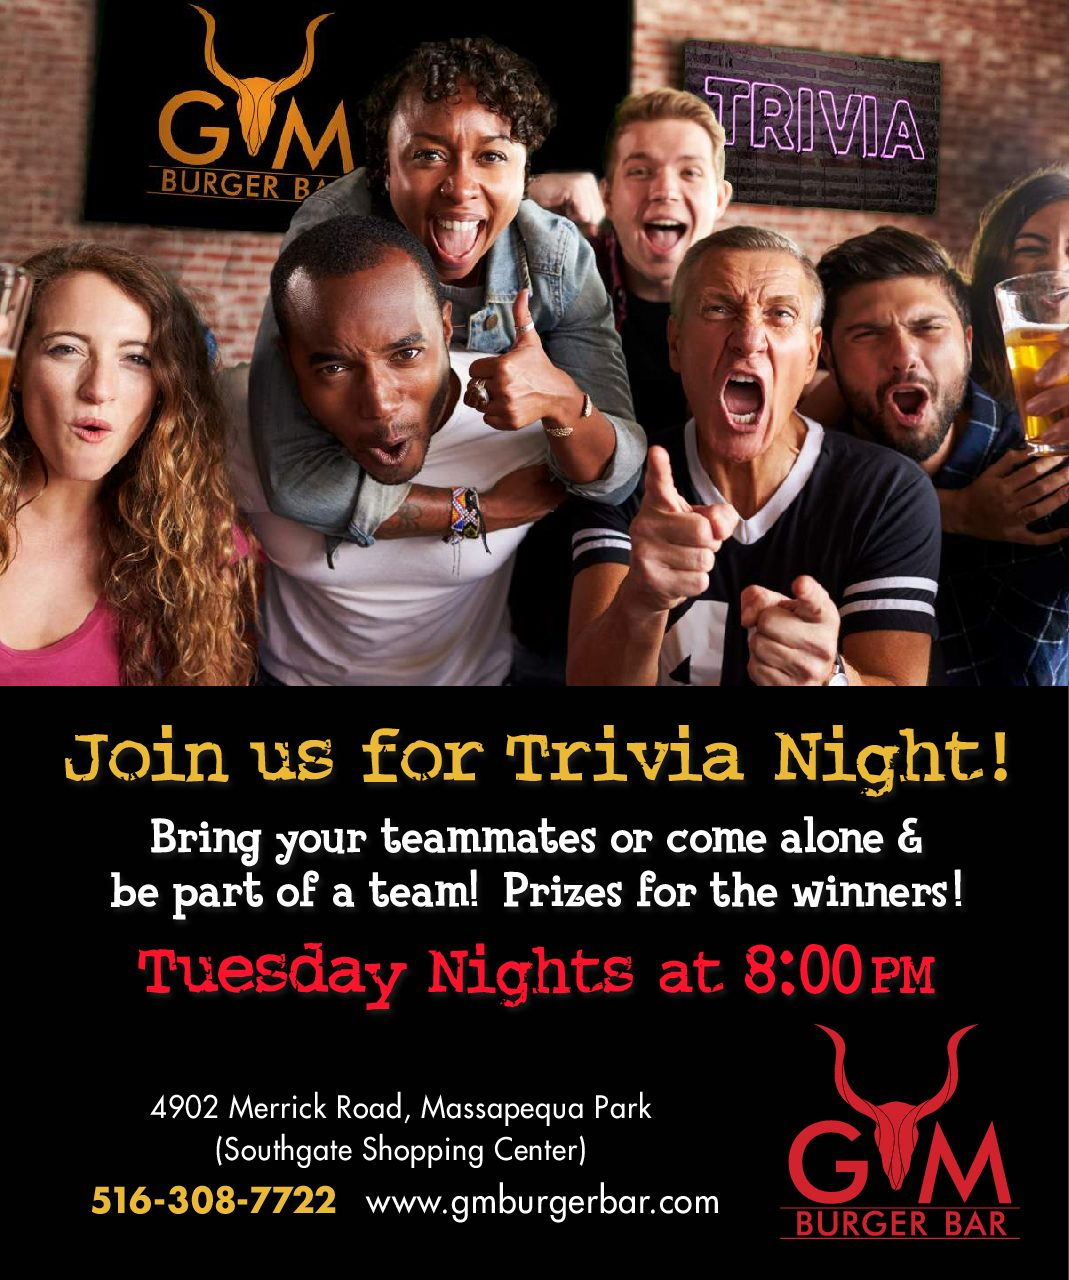 Join us for Trivia Night flyer, Tuesday nights at 8 PM